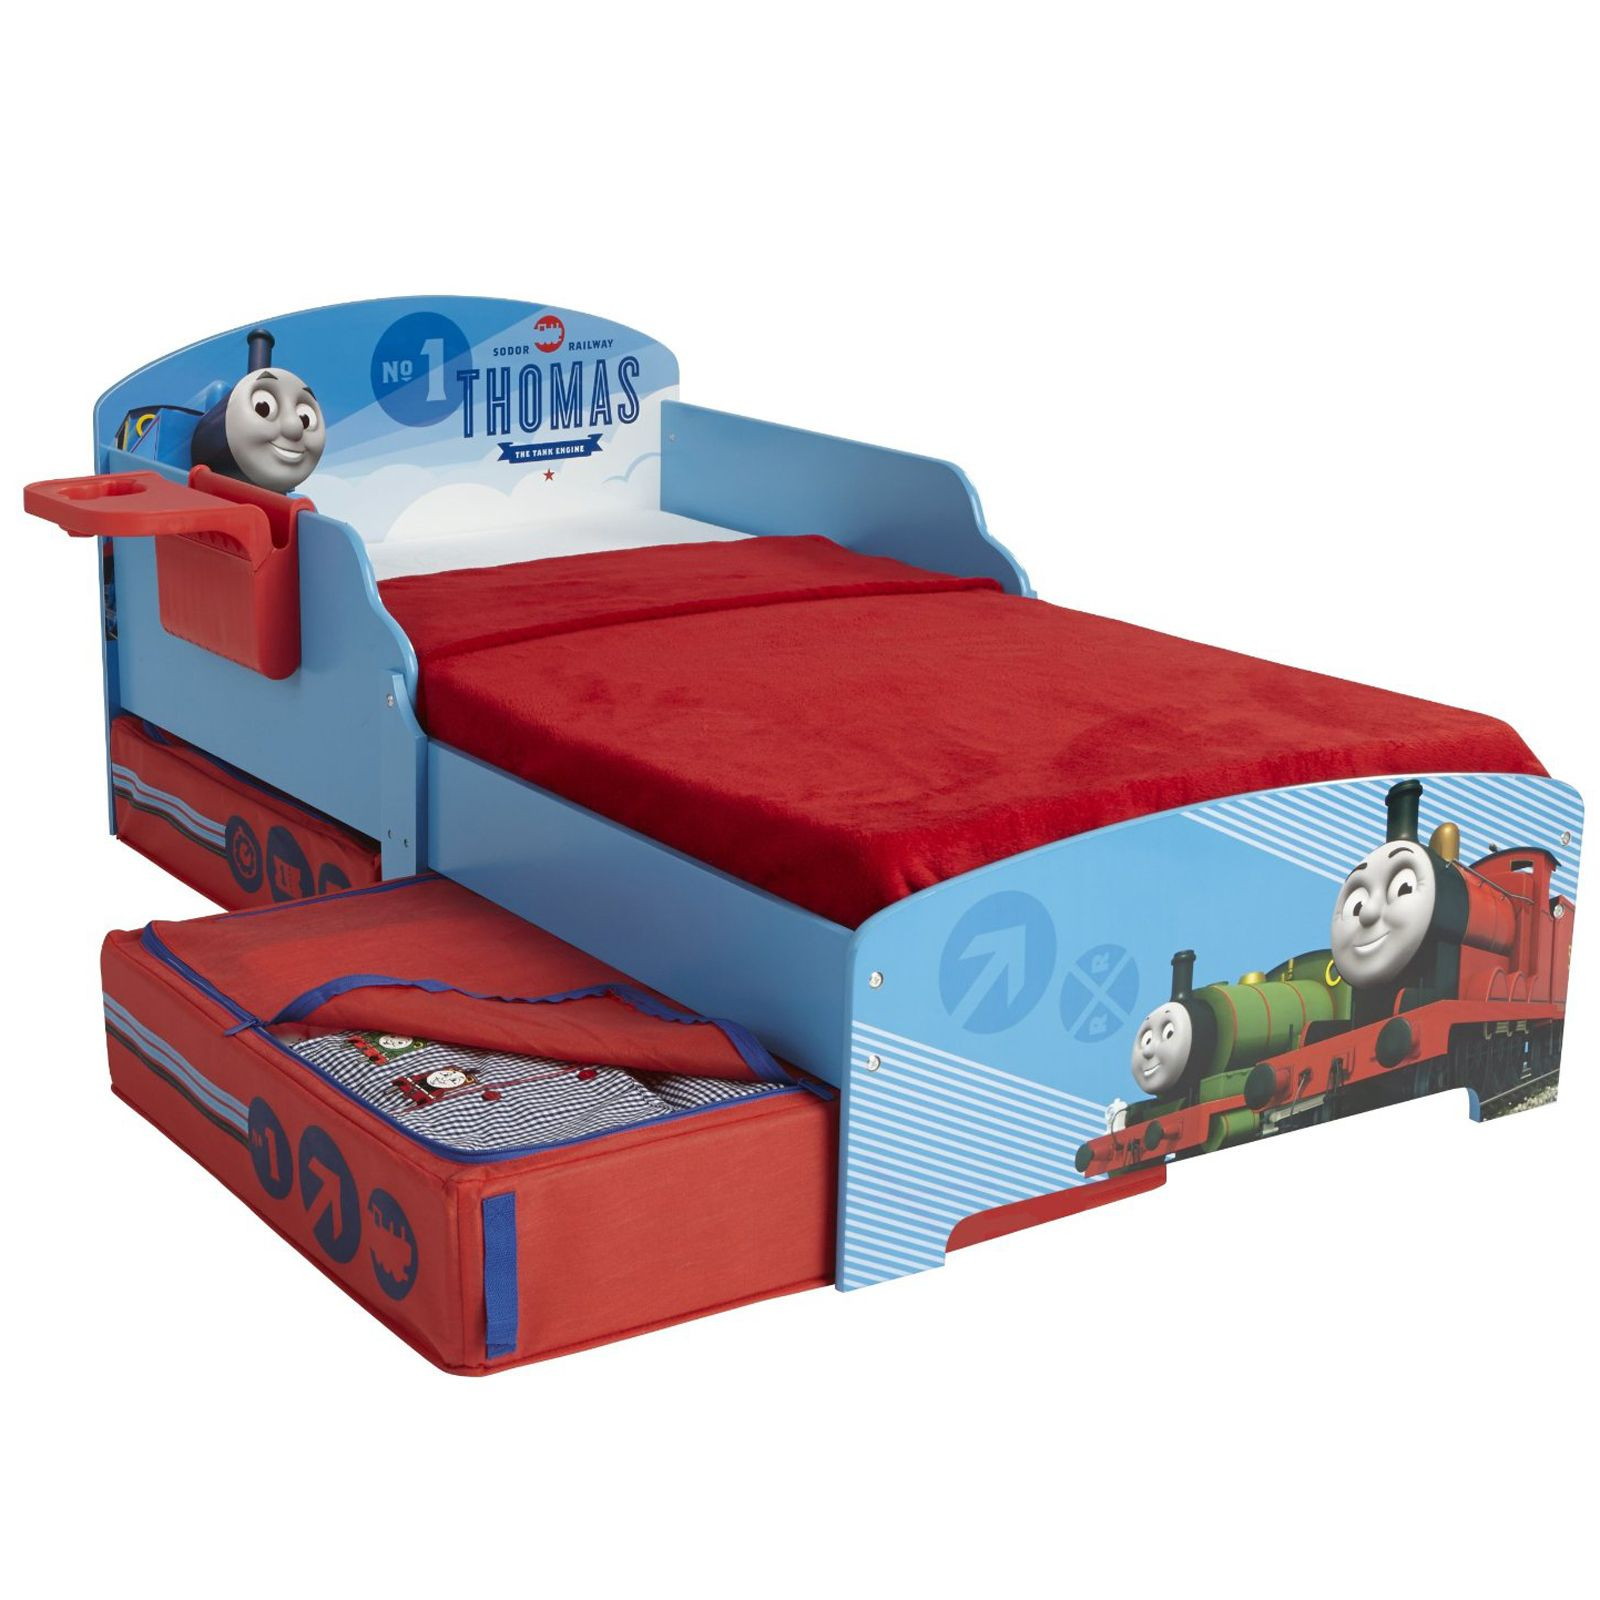 THOMAS Amp FRIENDS TODDER BED WITH STORAGE Amp SHELF DELUXE